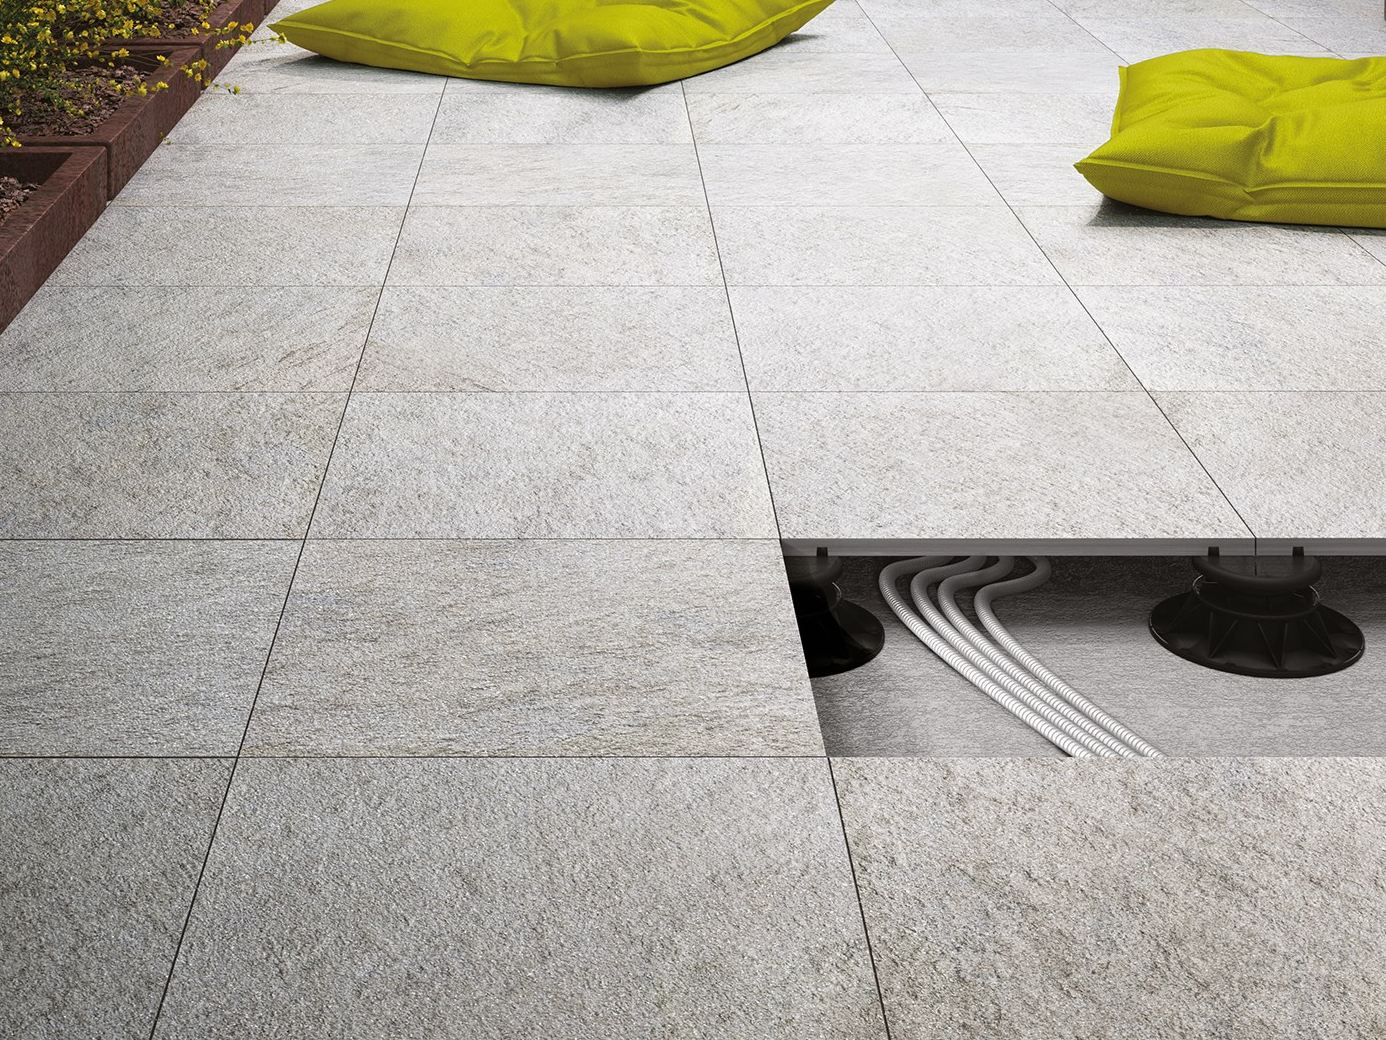 Glazed stoneware outdoor floor tiles multiquartz 20 by marazzi for Dalle exterieur 60x60